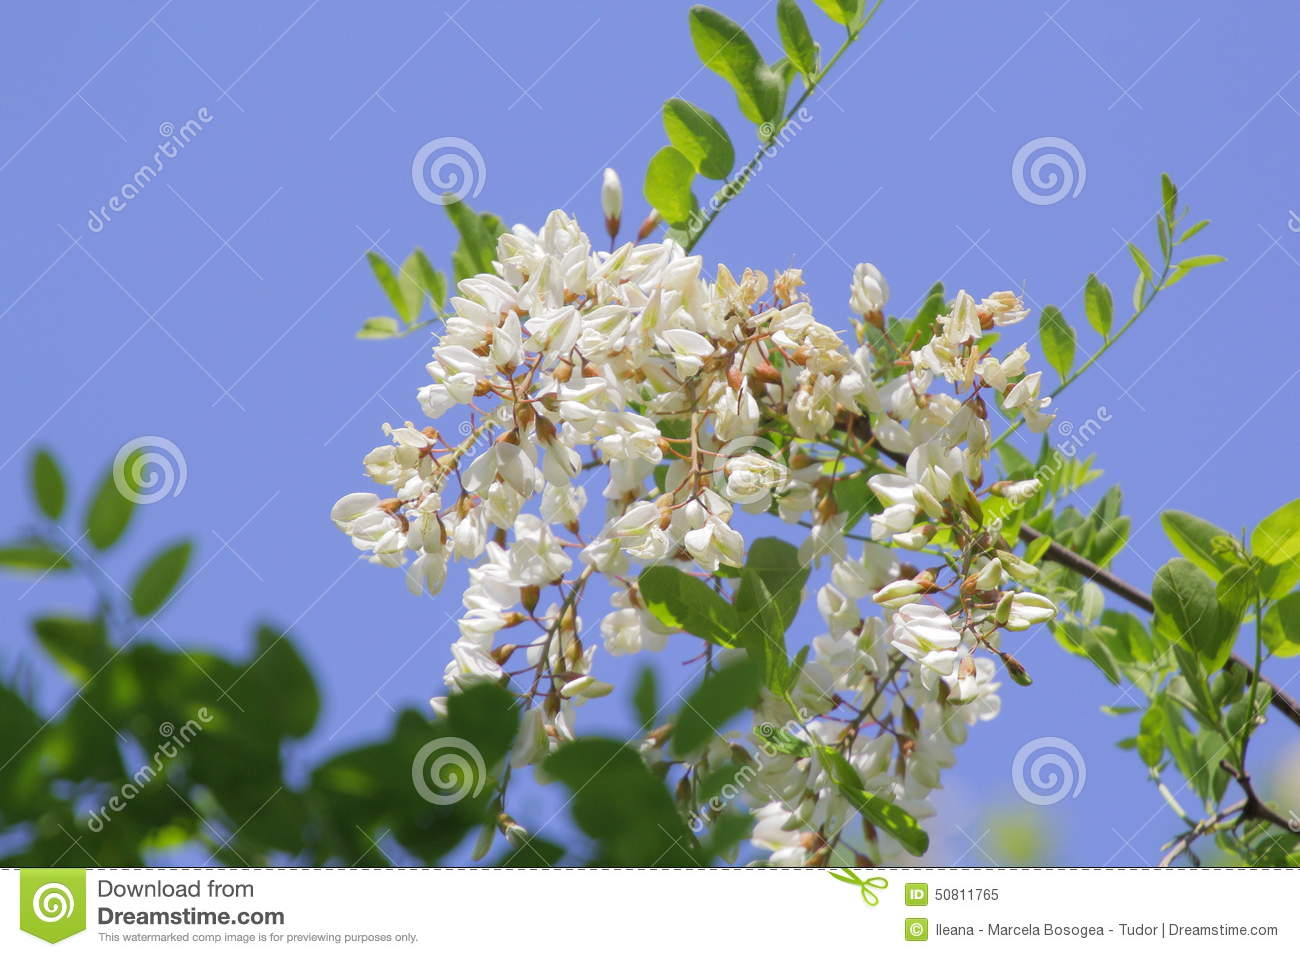 Locust Tree Flowers And Leaves With Bees Stock Image